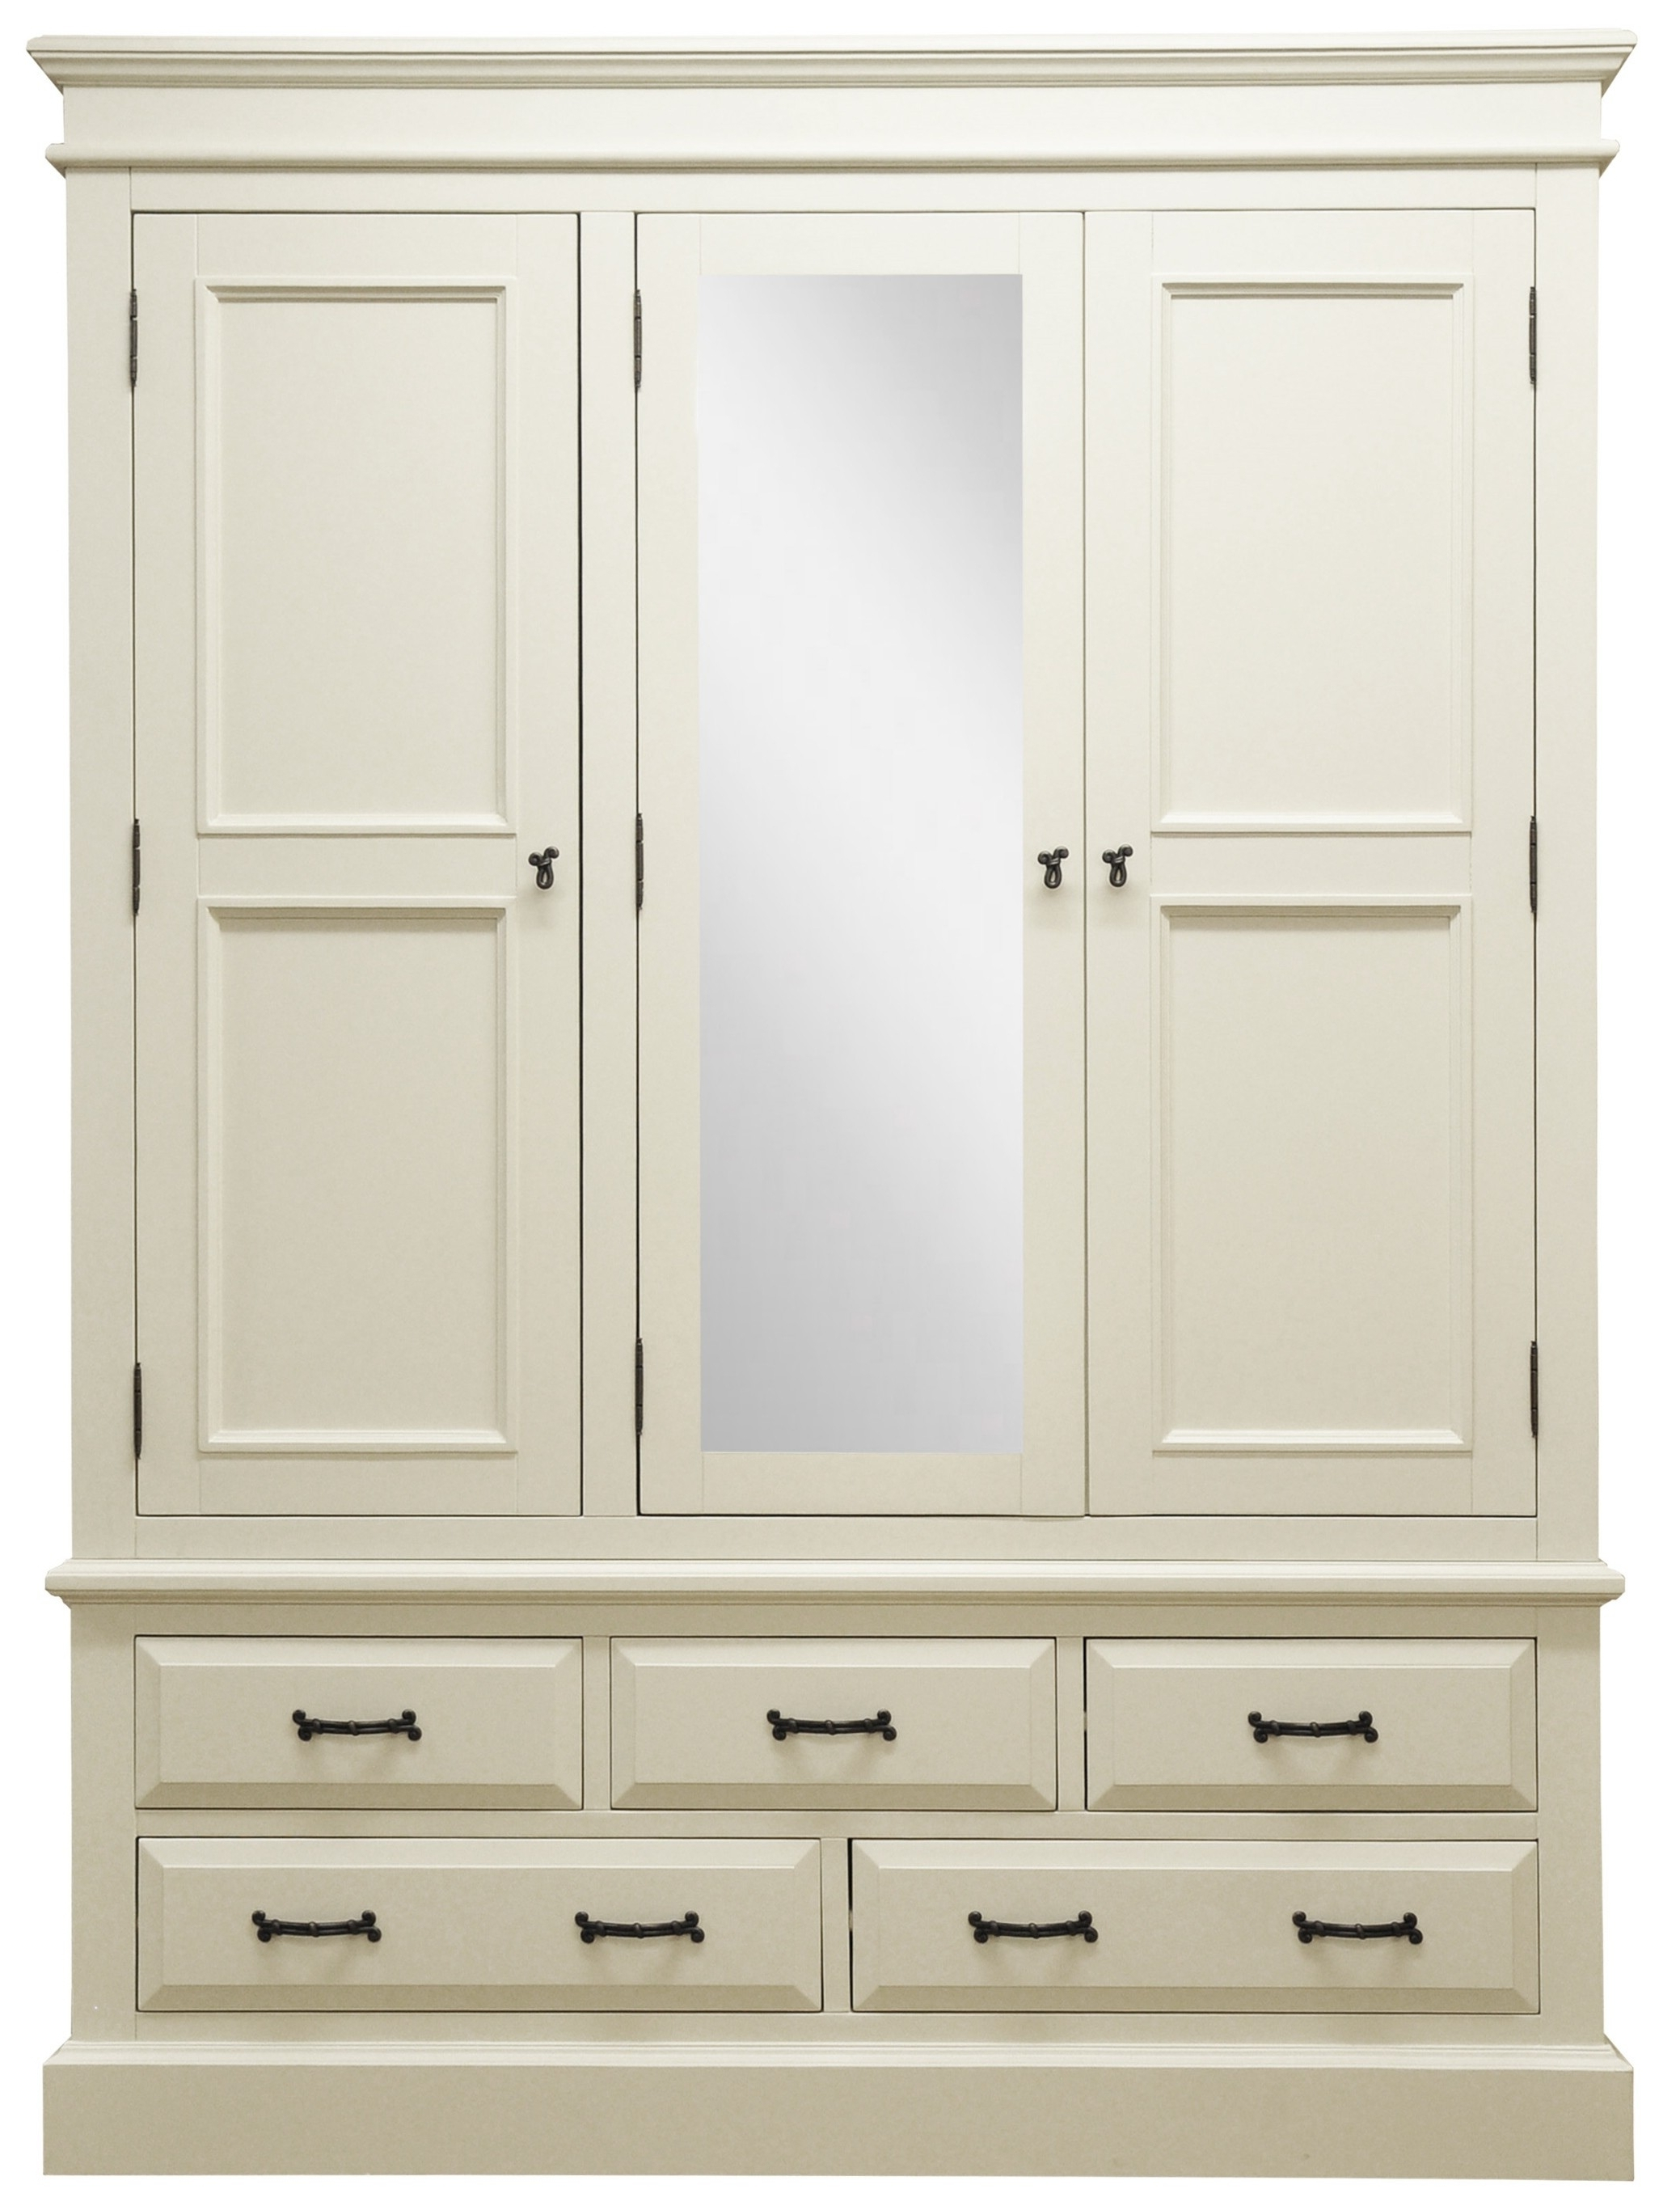 White Wardrobes With Drawers And Mirror With Most Current White Wood Wardrobe, Wooden Wardrobe Closets White Wooden Wardrobe (View 11 of 15)